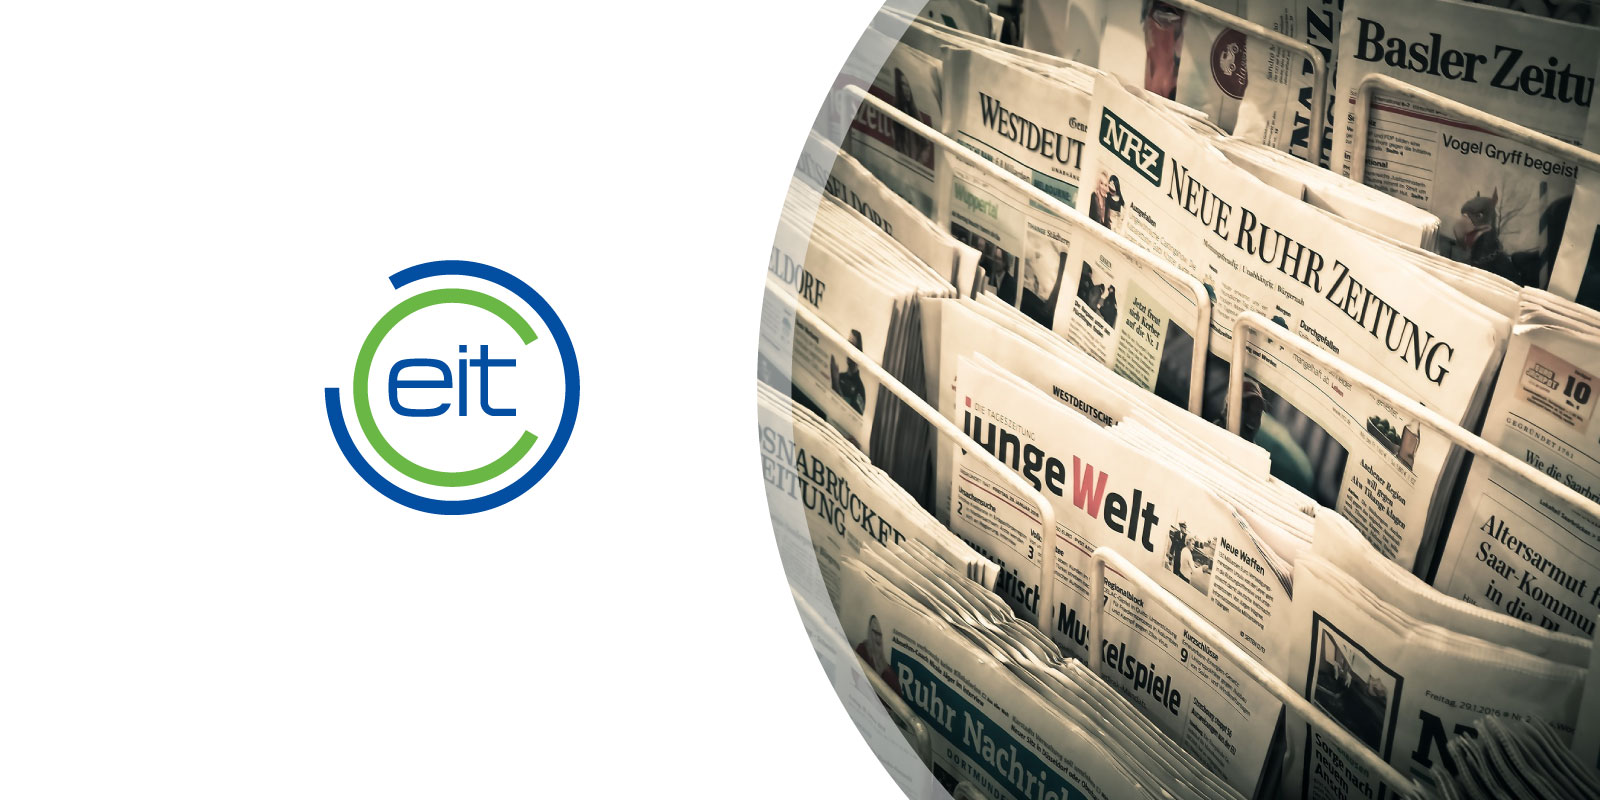 From Forbes to RollingStone: The EIT under the spotlight